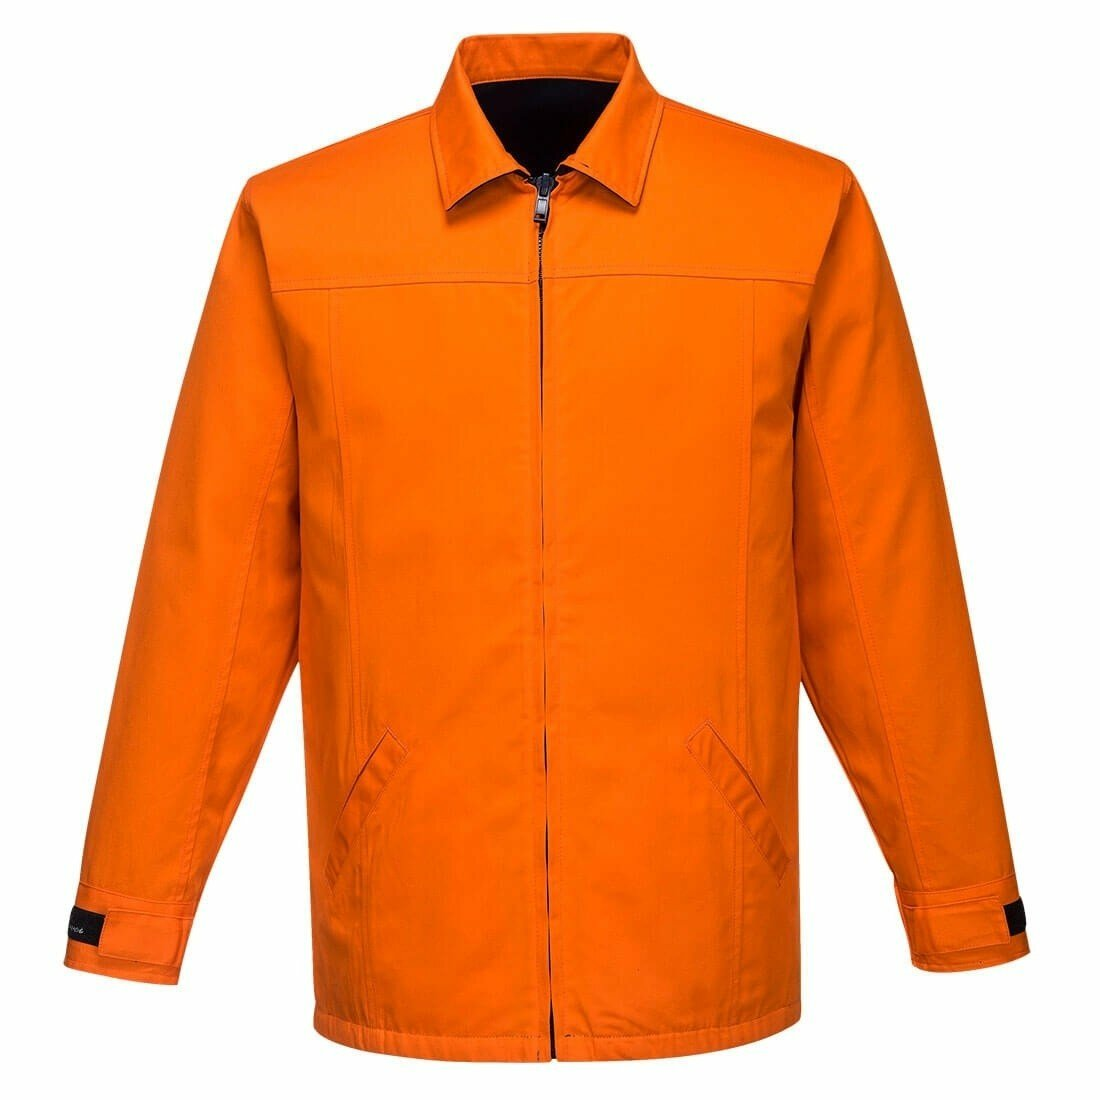 MJ288 100% Cotton Drill Jacket with Stain Repellent Finish